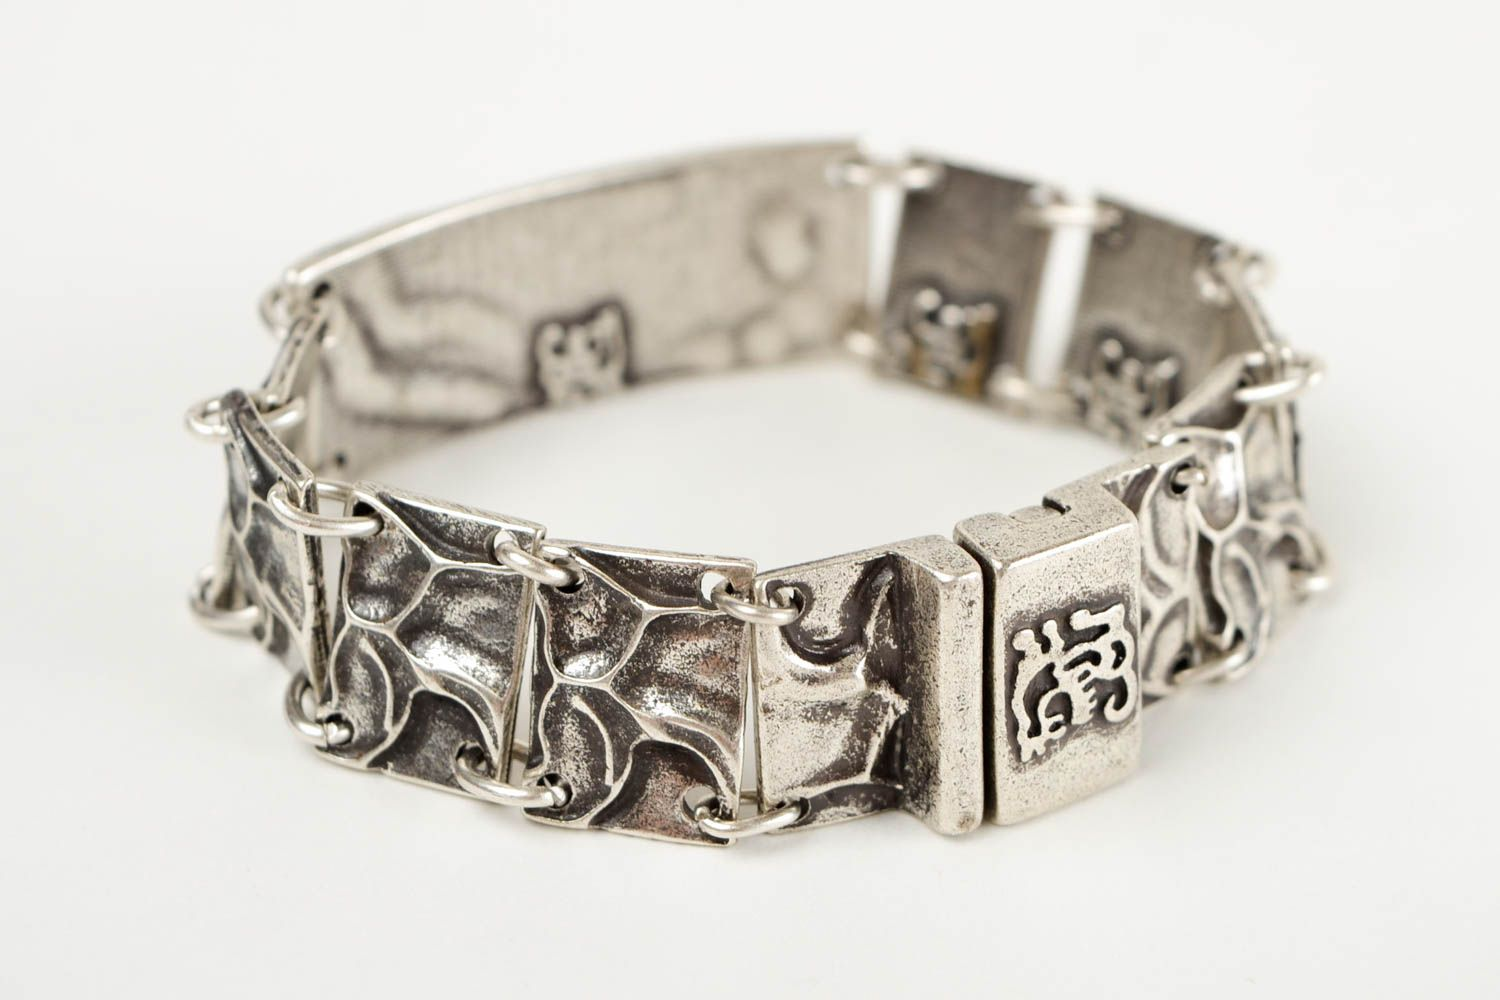 Unusual handmade metal bracelet fashion accessories for girls small gifts photo 5